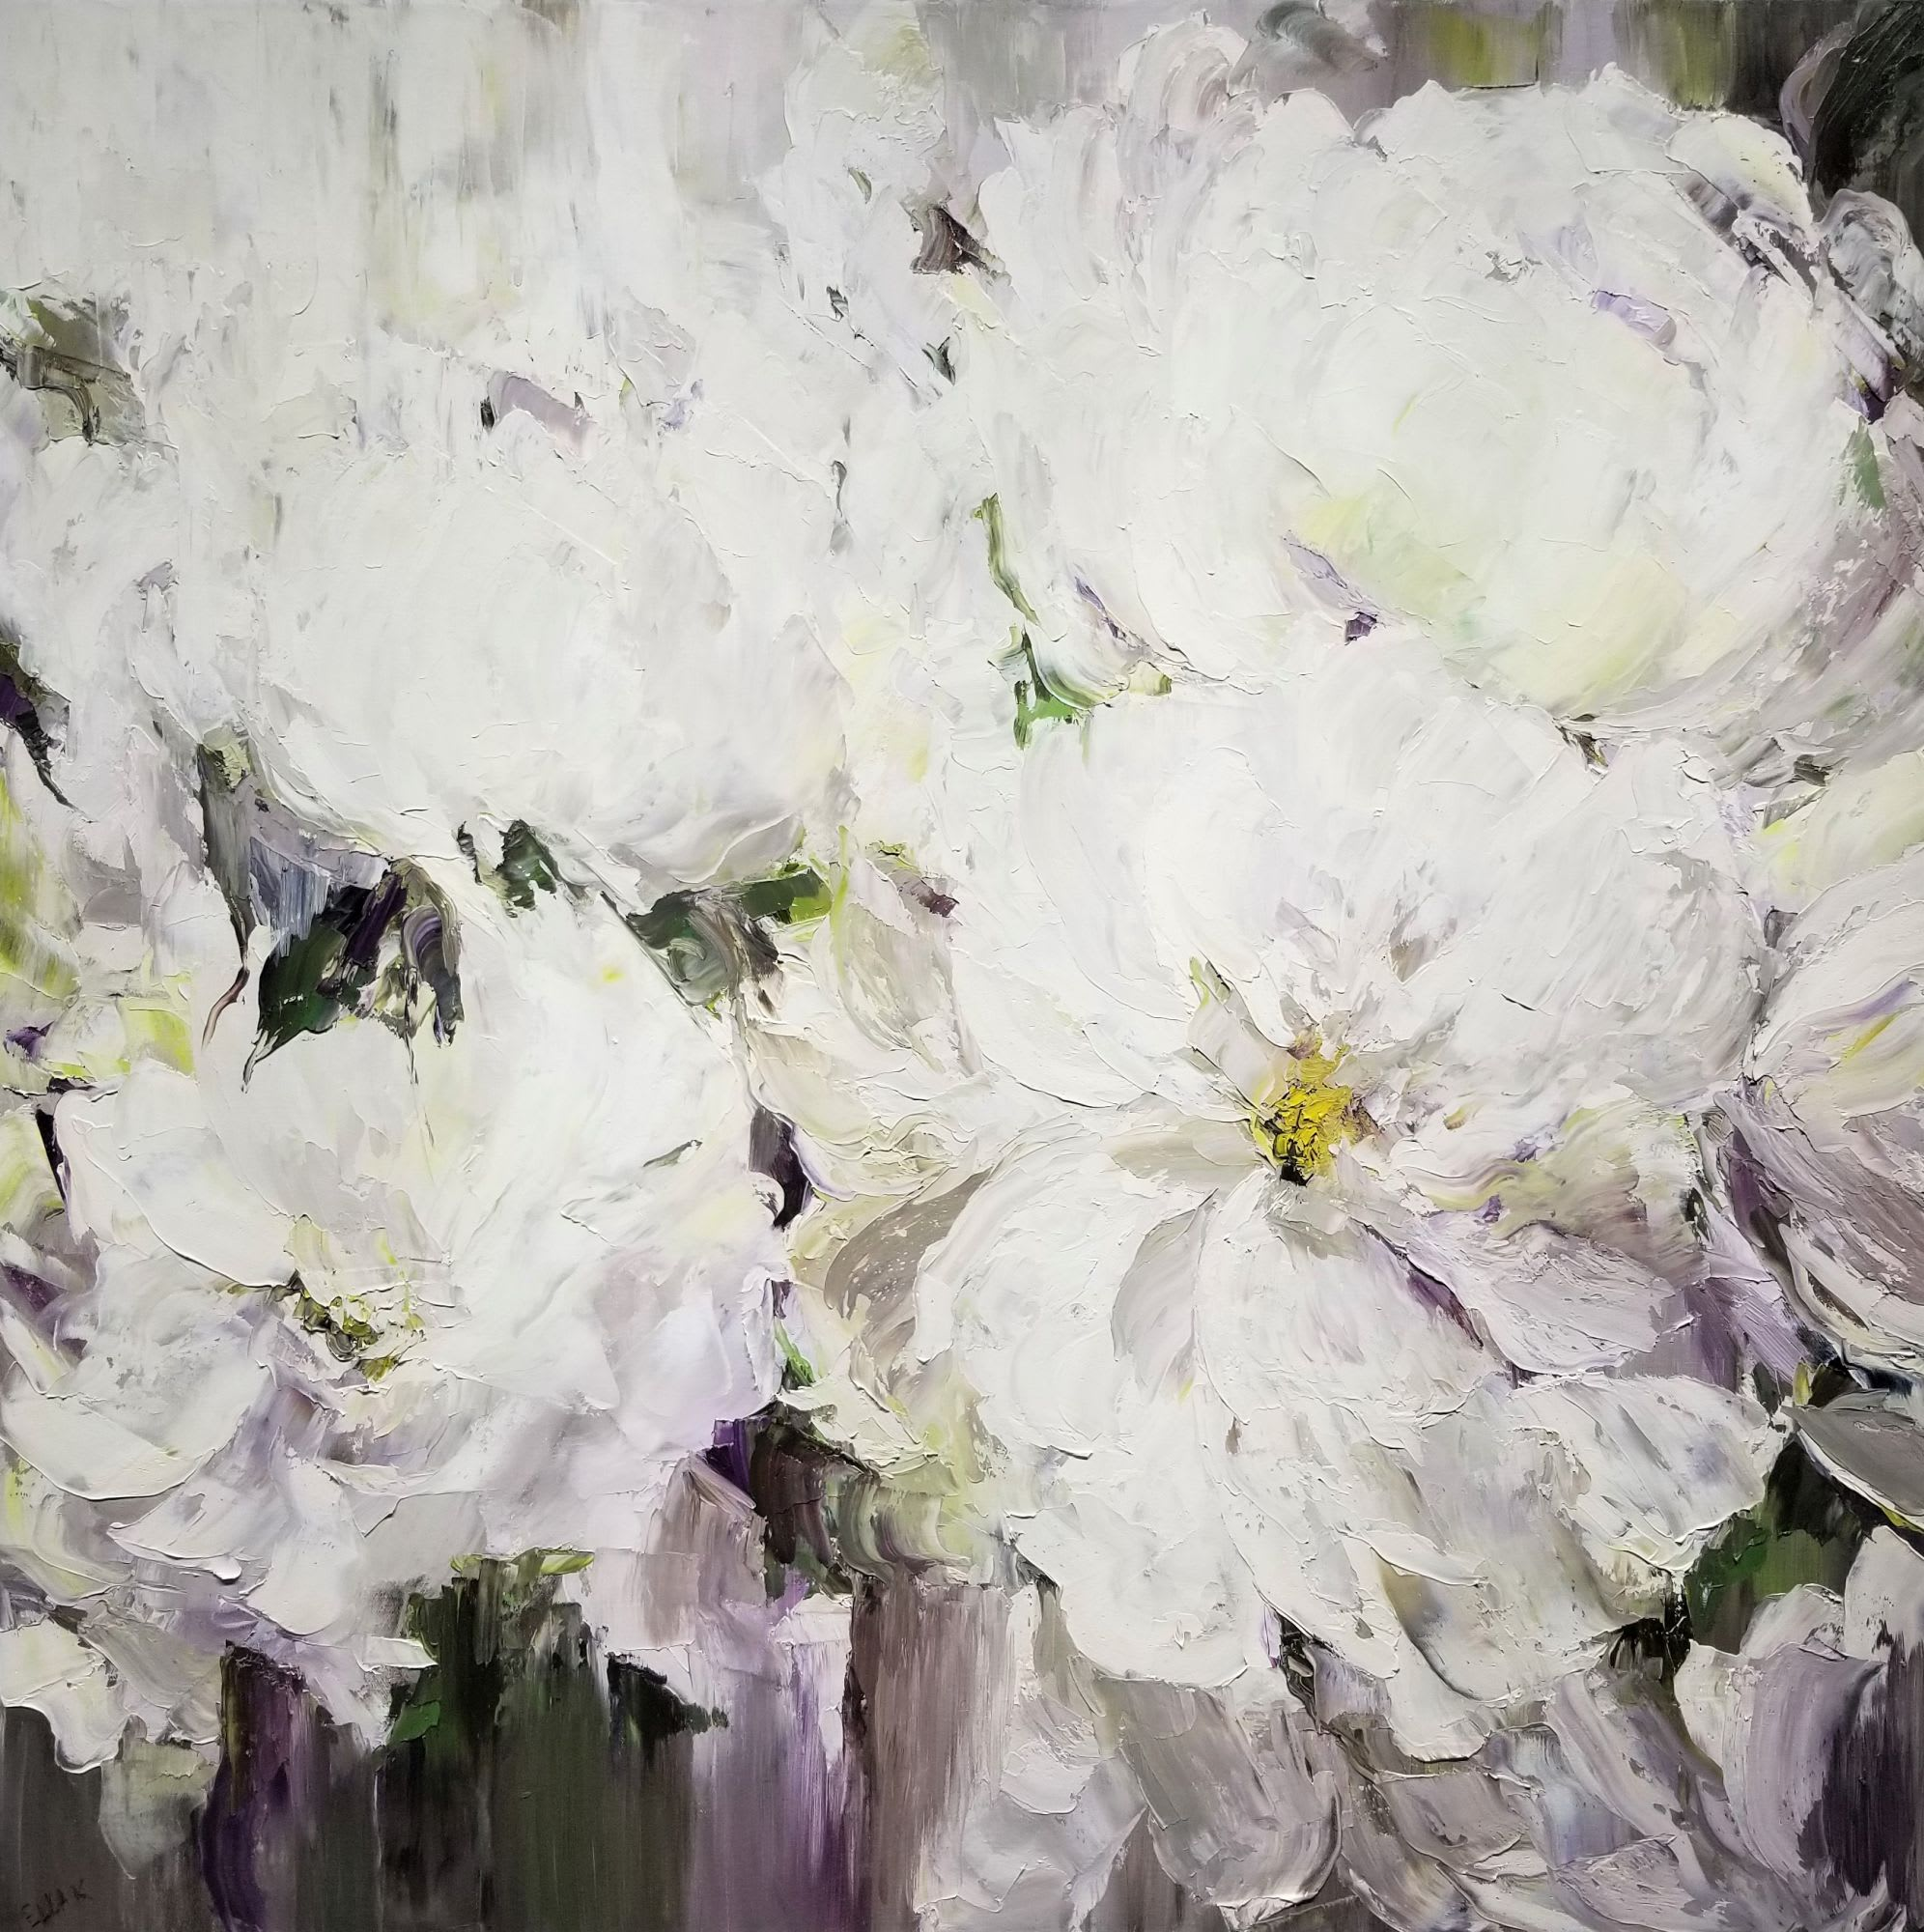 'White Peonia' by Ella K at Gallery 133